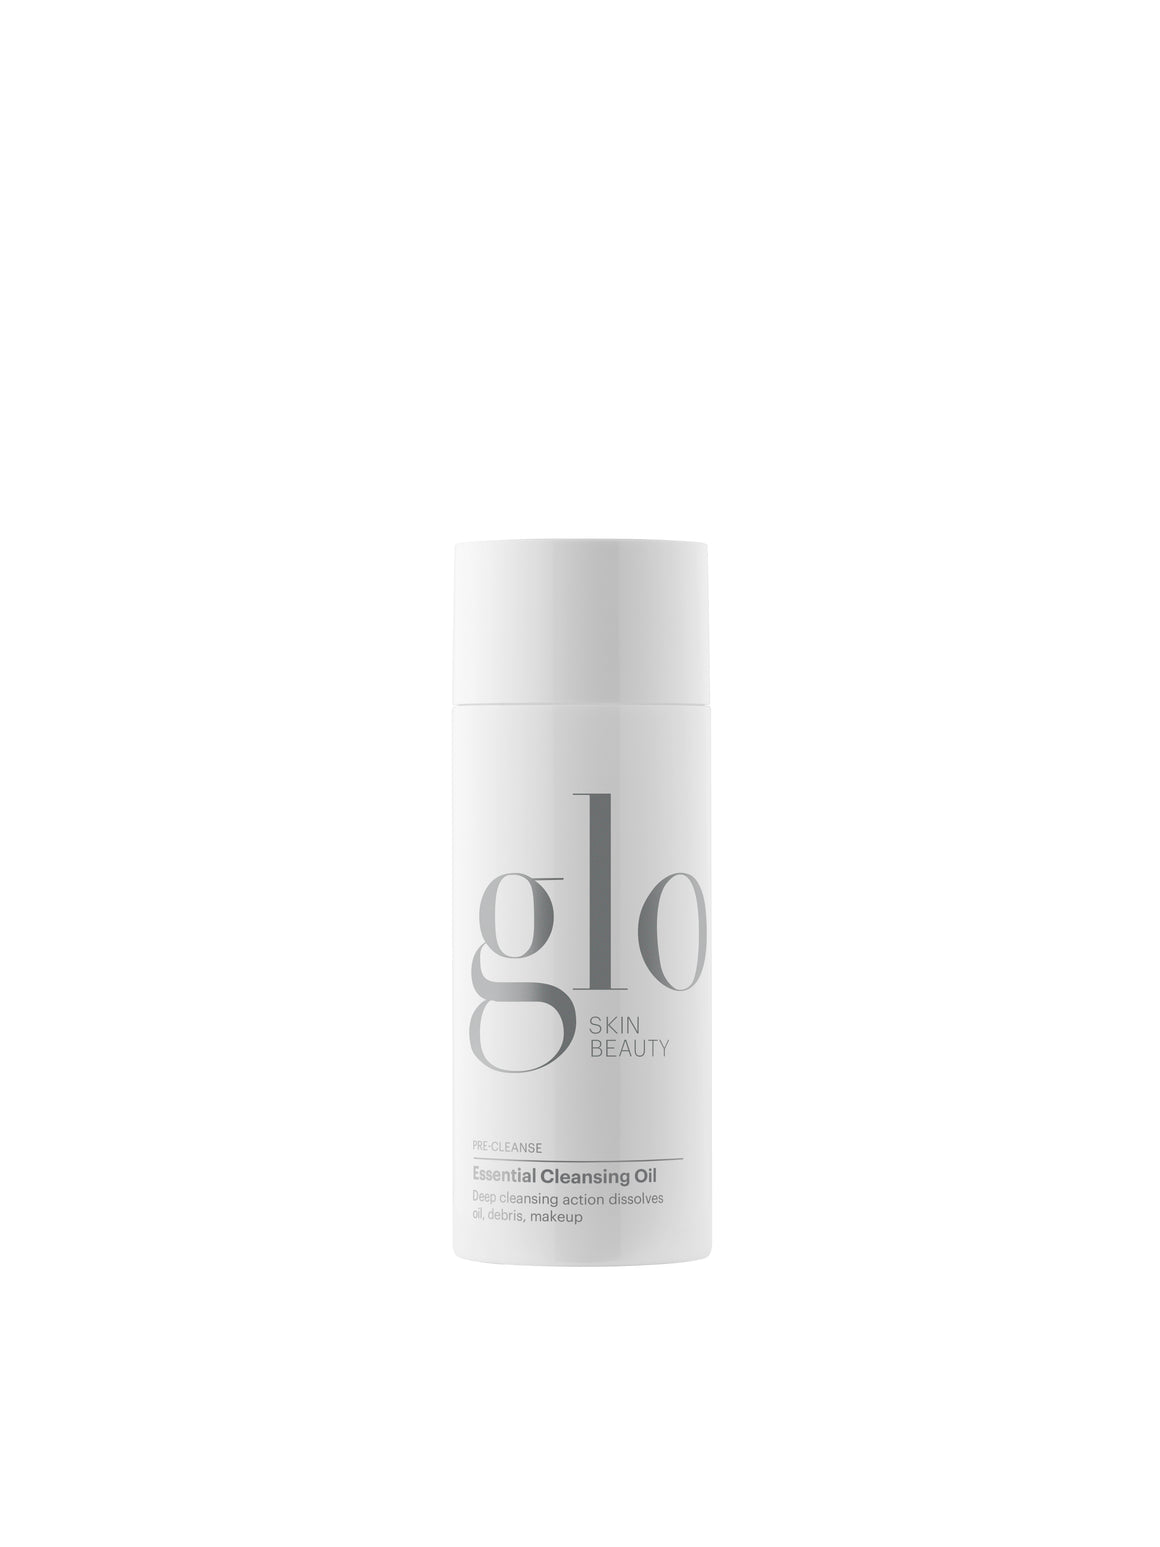 Glo skin Beauty Essential Cleansing Oil ( FIRST CLEANSE/ MAKEUP REMOVER)